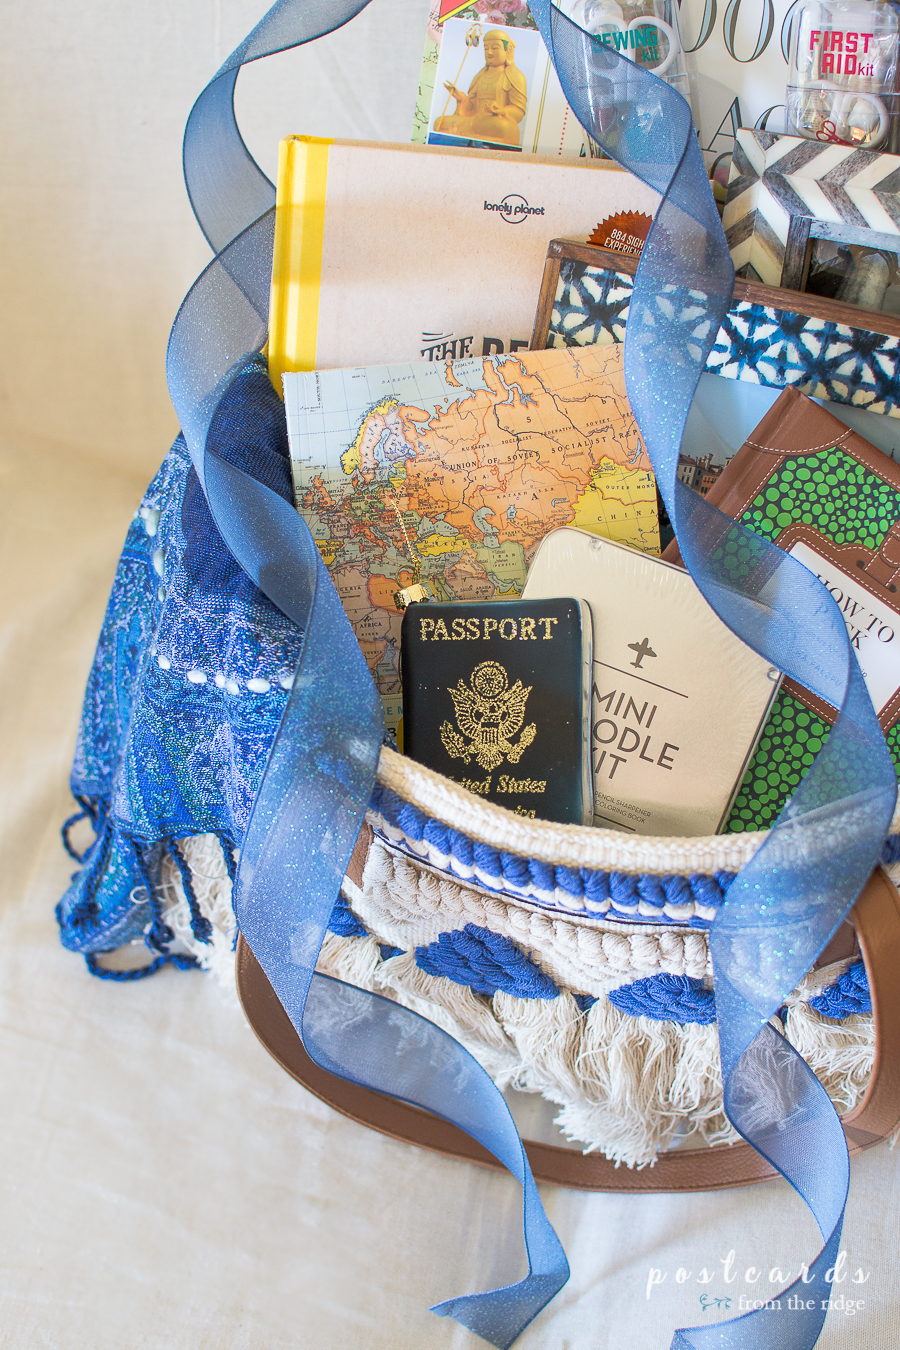 LOVE these fun gifts for travelers